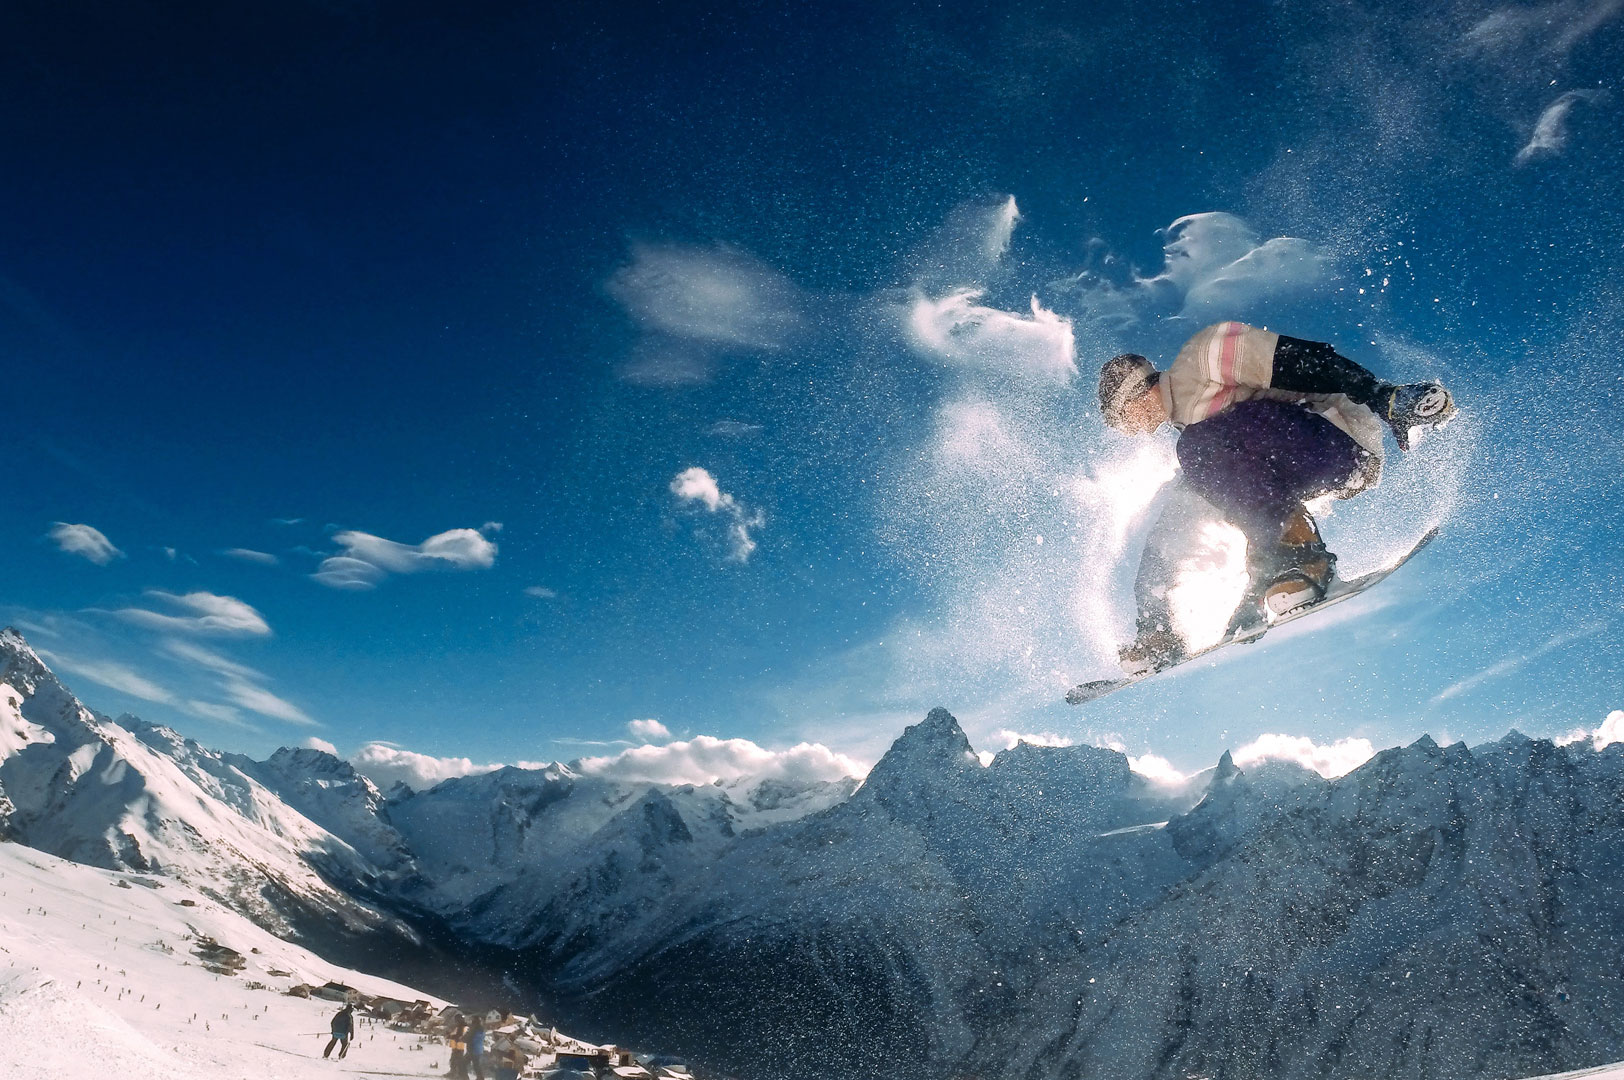 travel insurance that covers snowboarding